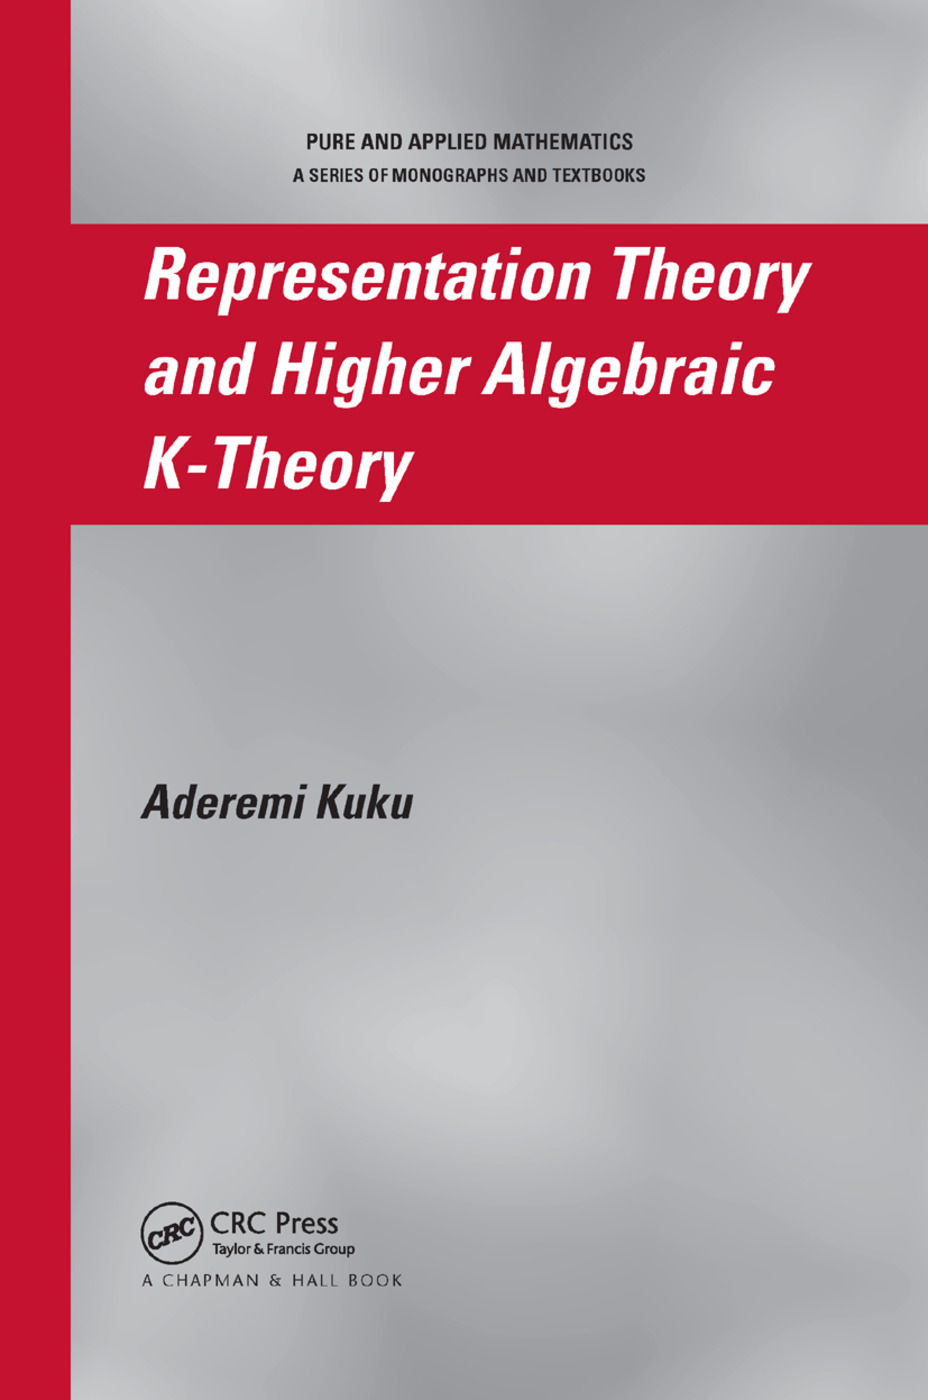 Representation Theory and Higher Algebraic K-Theory: 1st Edition (Paperback) book cover